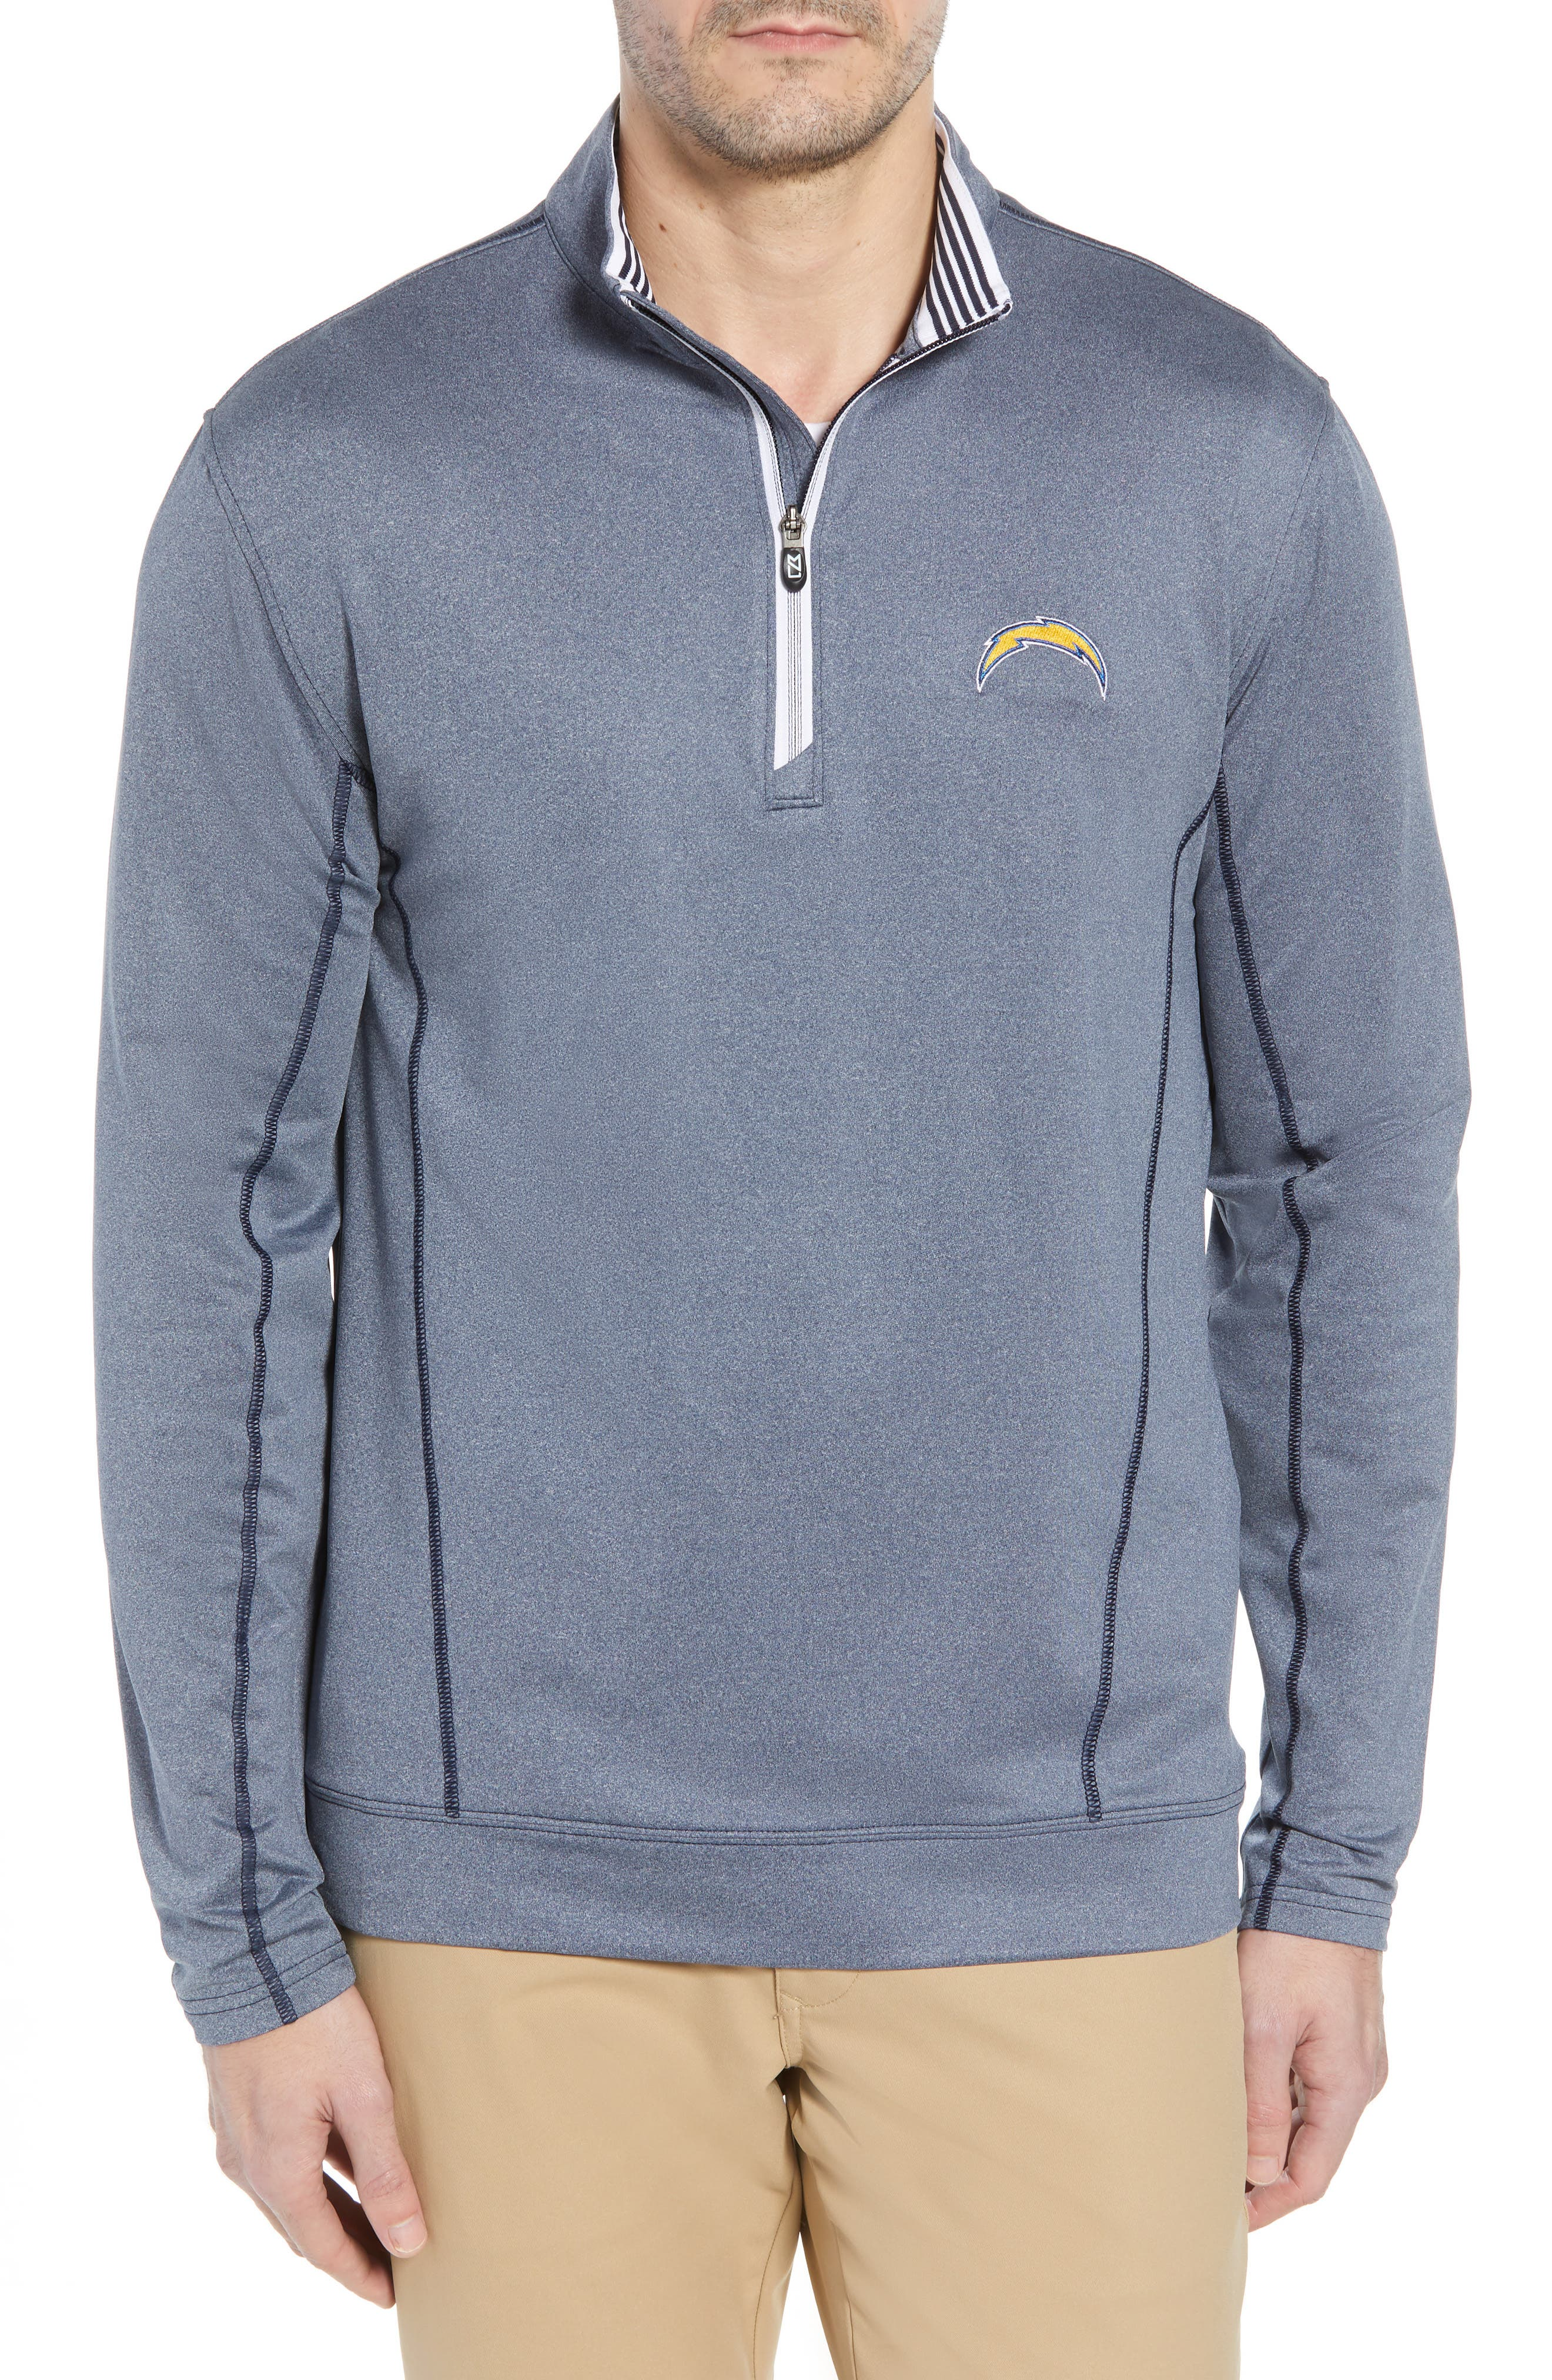 Endurance Los Angeles Chargers Regular Fit Pullover,                             Main thumbnail 1, color,                             LIBERTY NAVY HEATHER